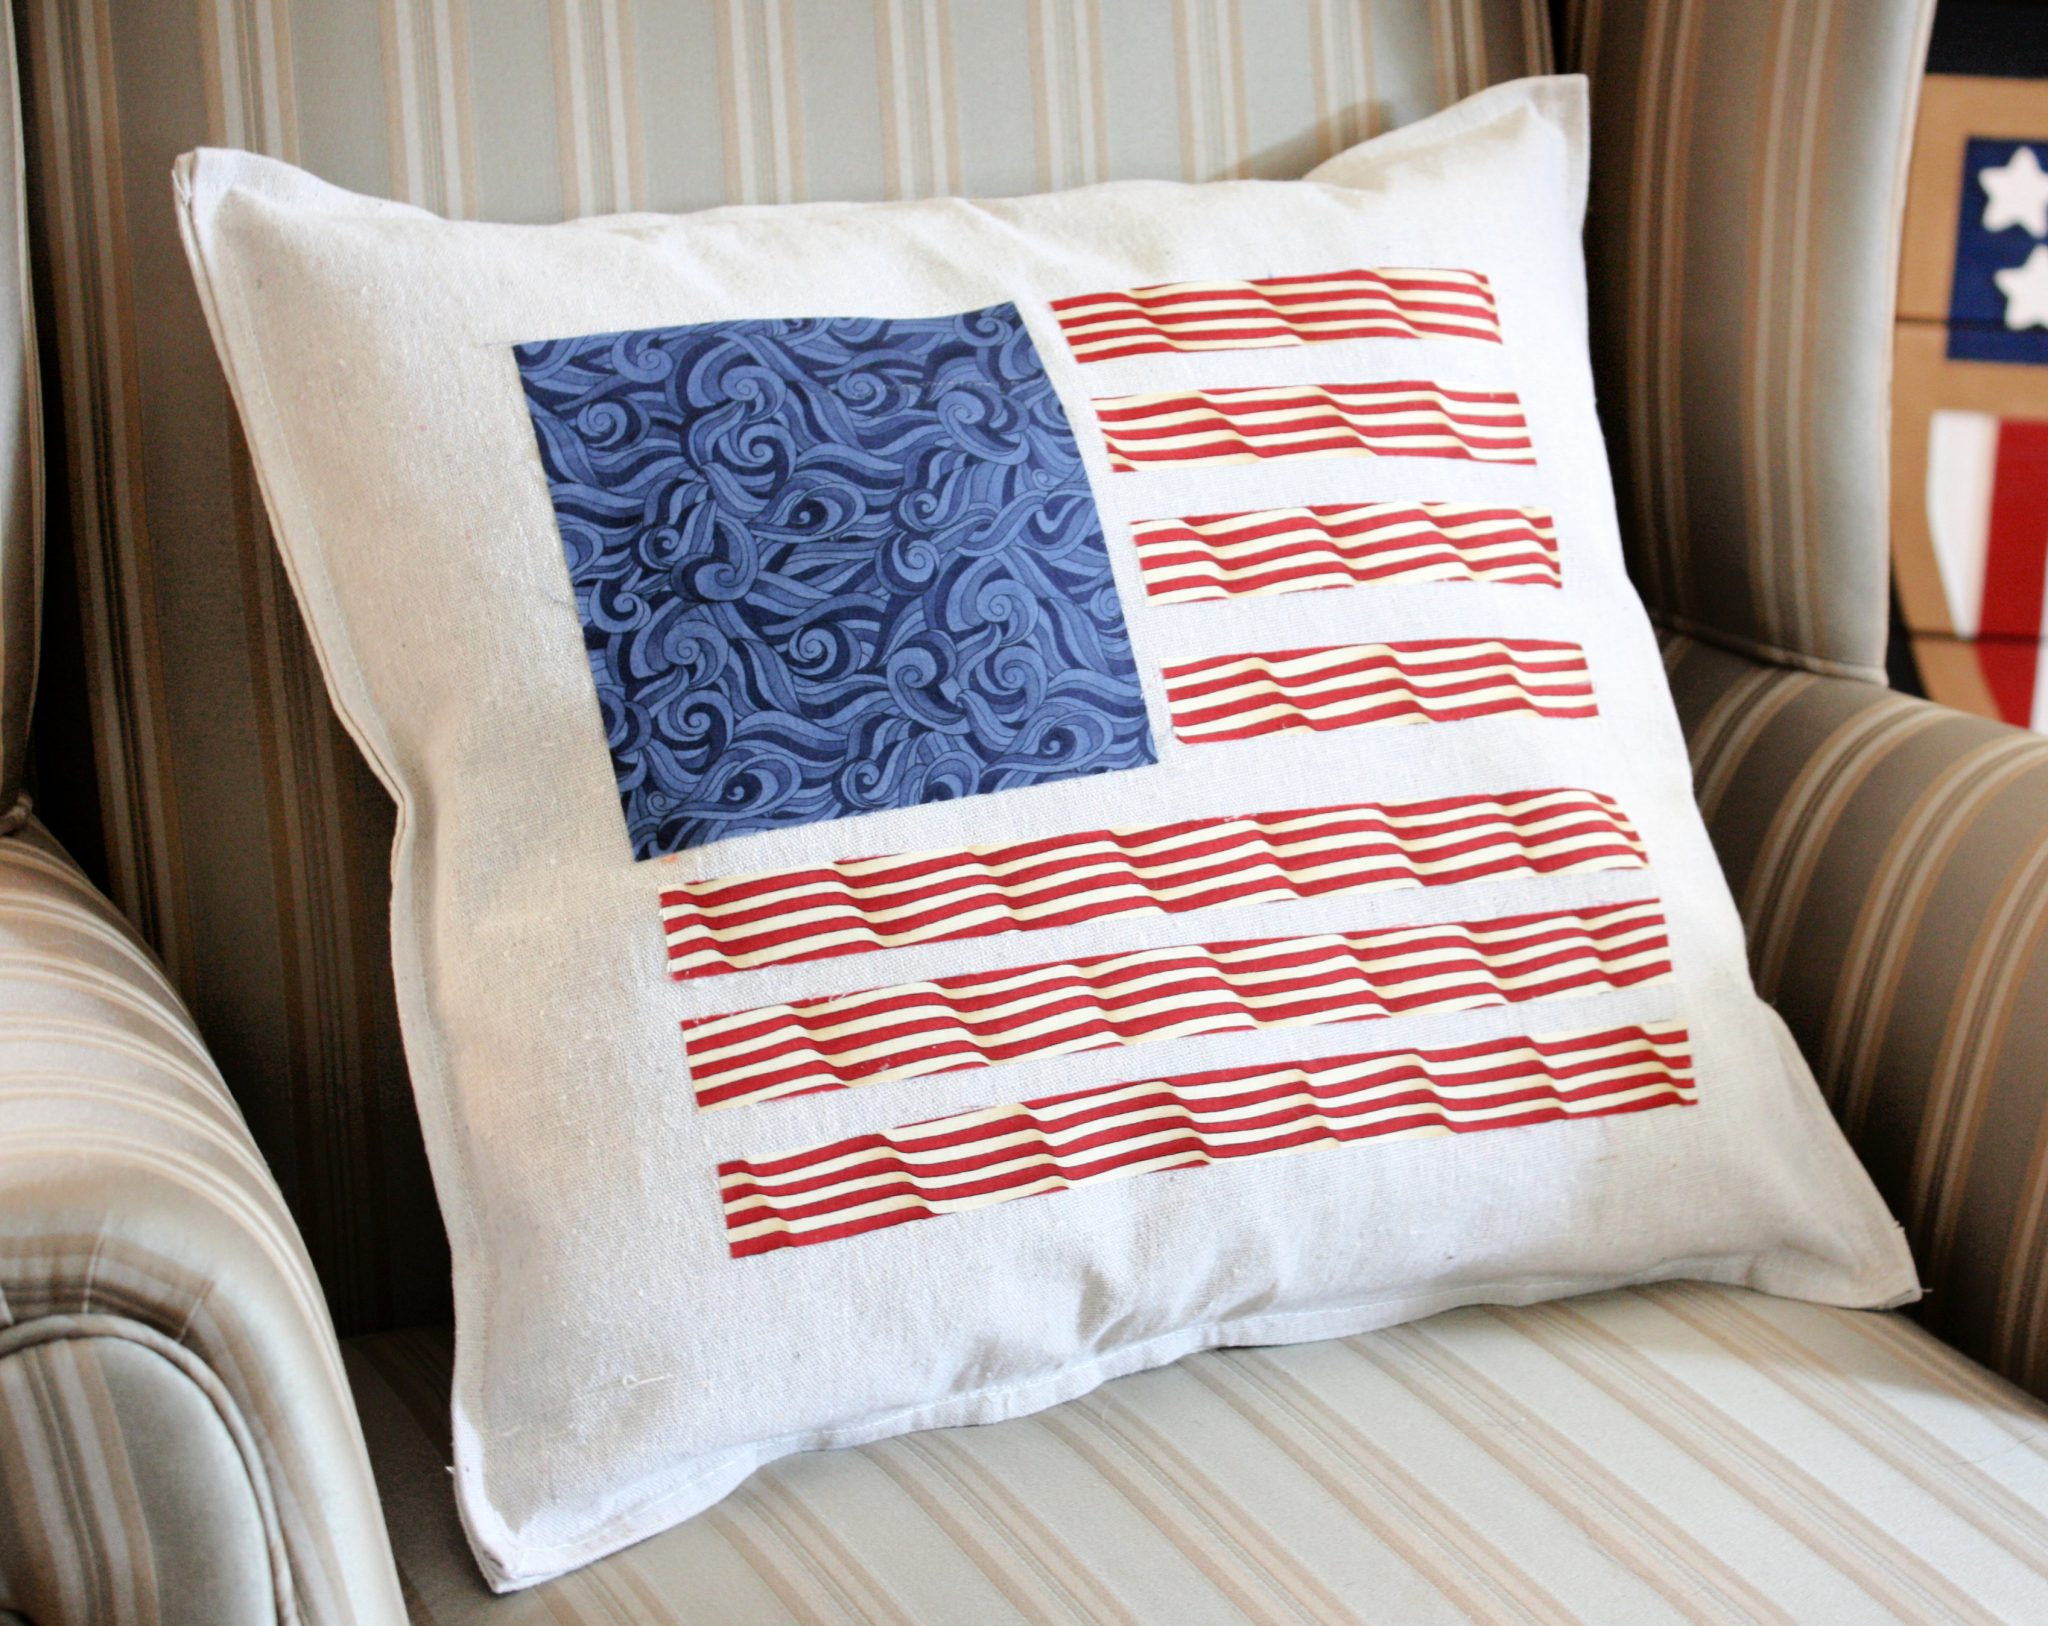 American flag pillow made with strips of fabric.